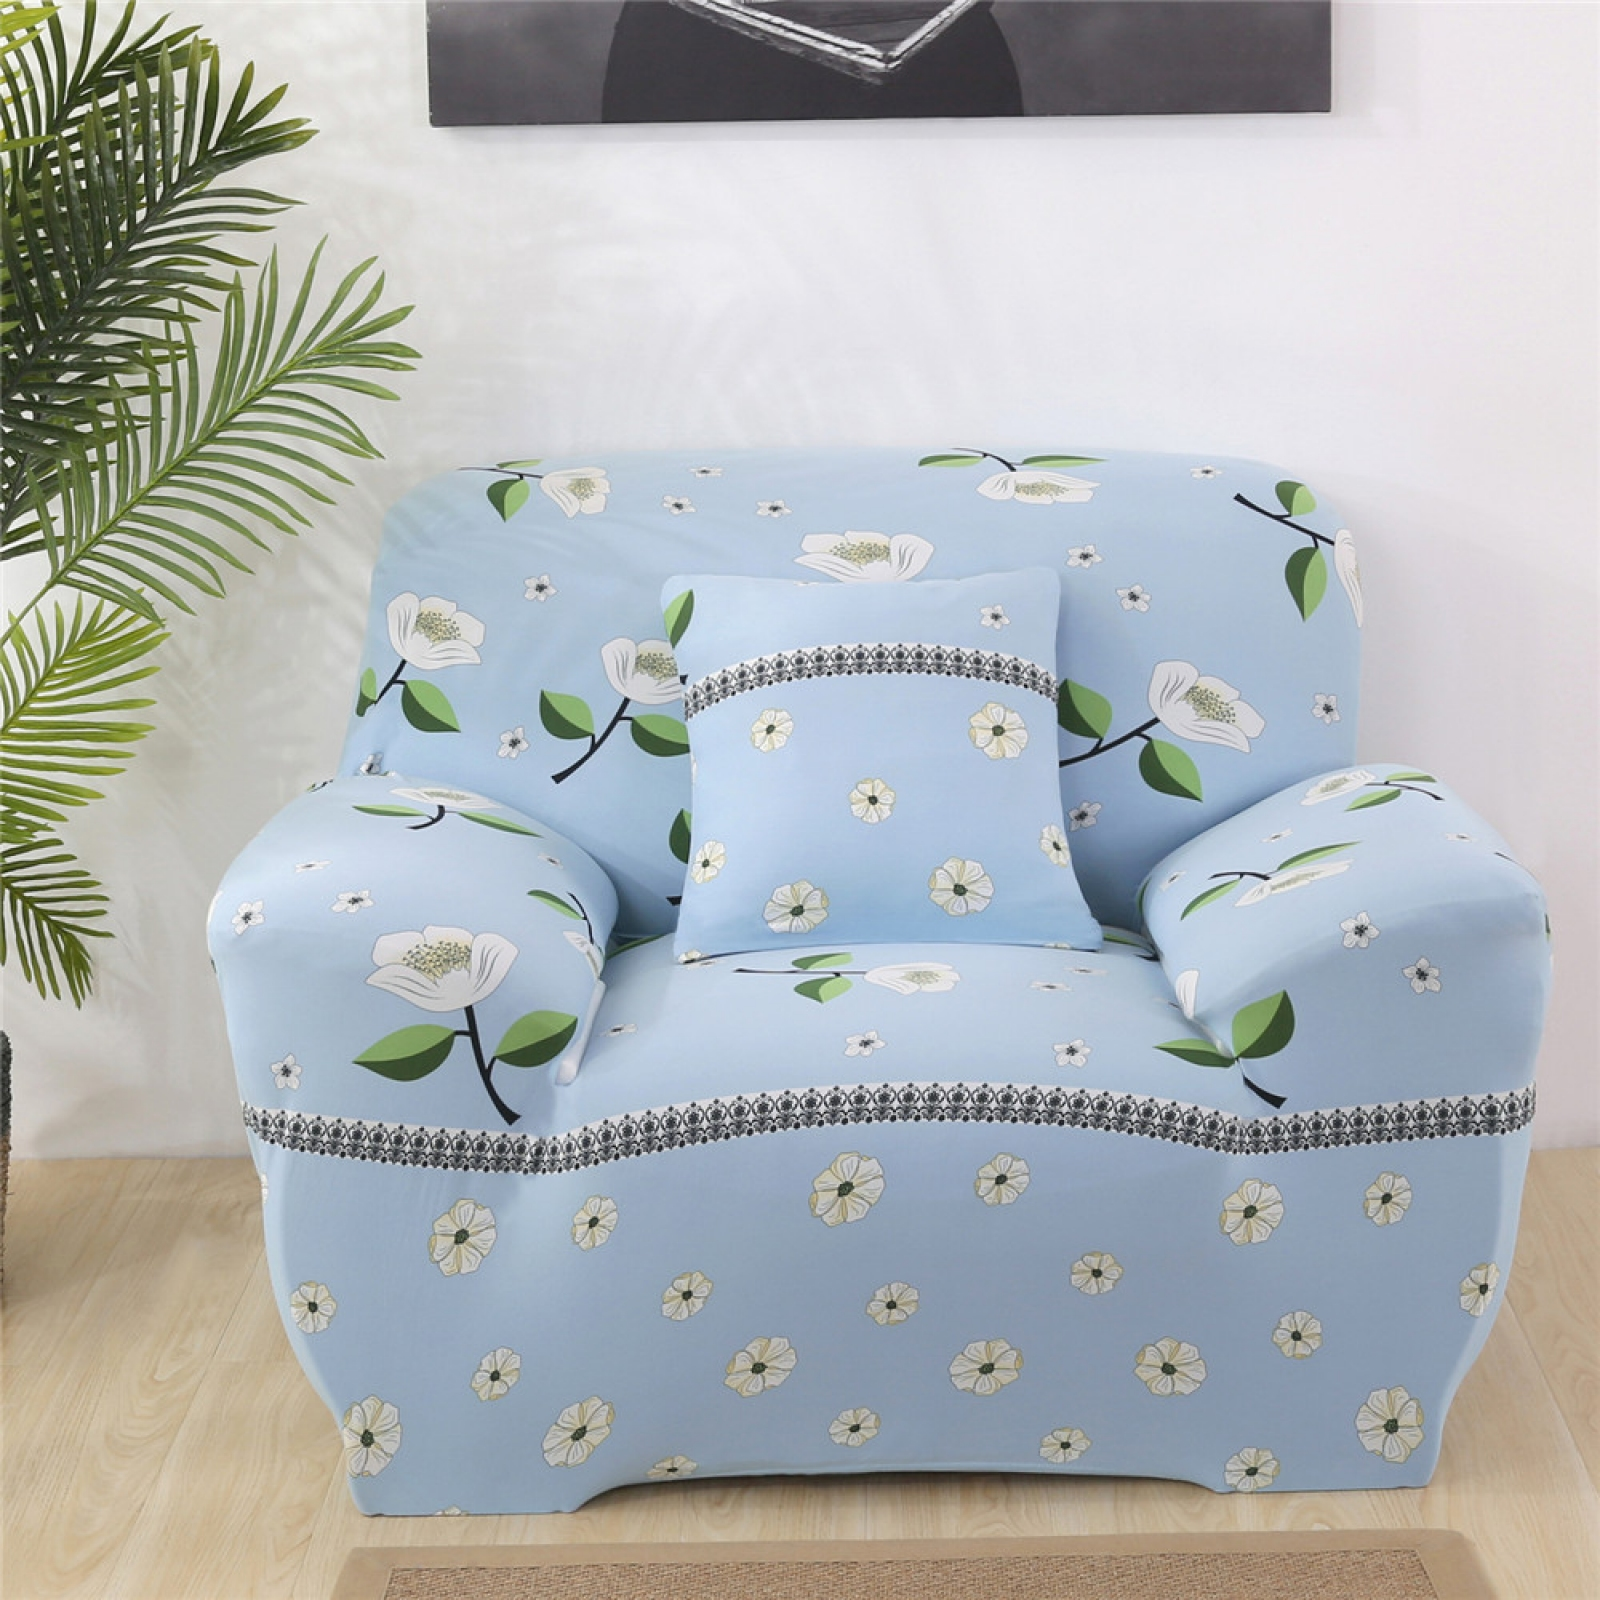 Stretch Sofa Slipcover Chair Covers Protectors Couch Covers